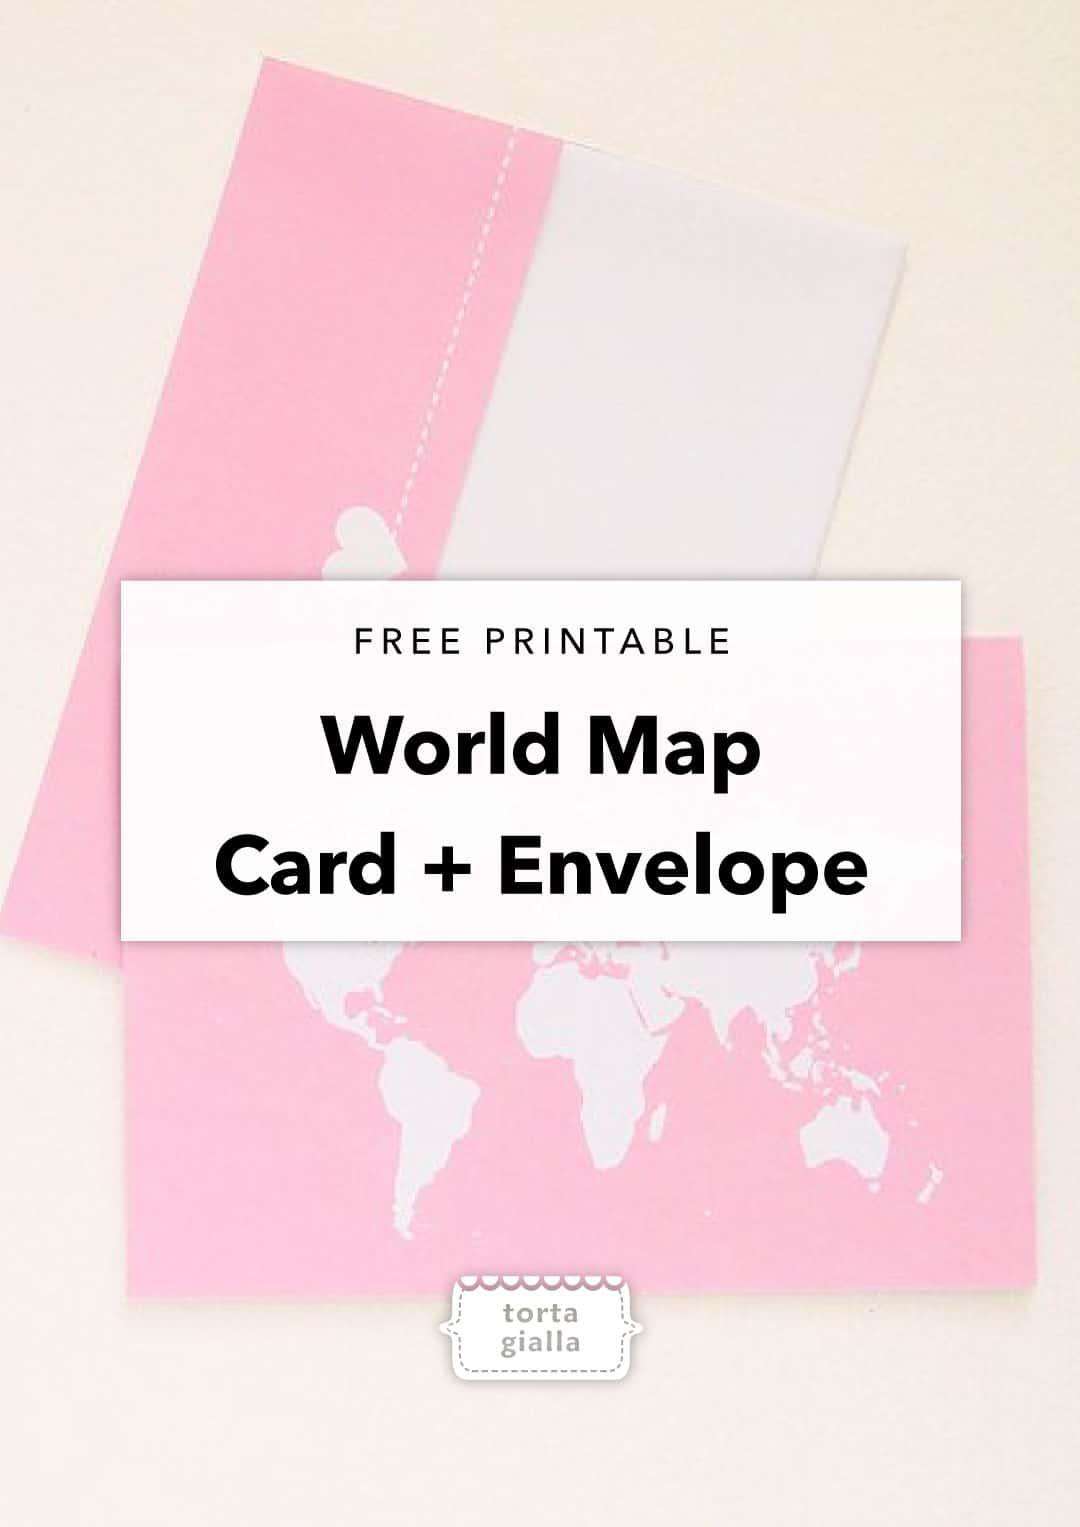 Free Printable Thinking of You World Map Card and Envelope